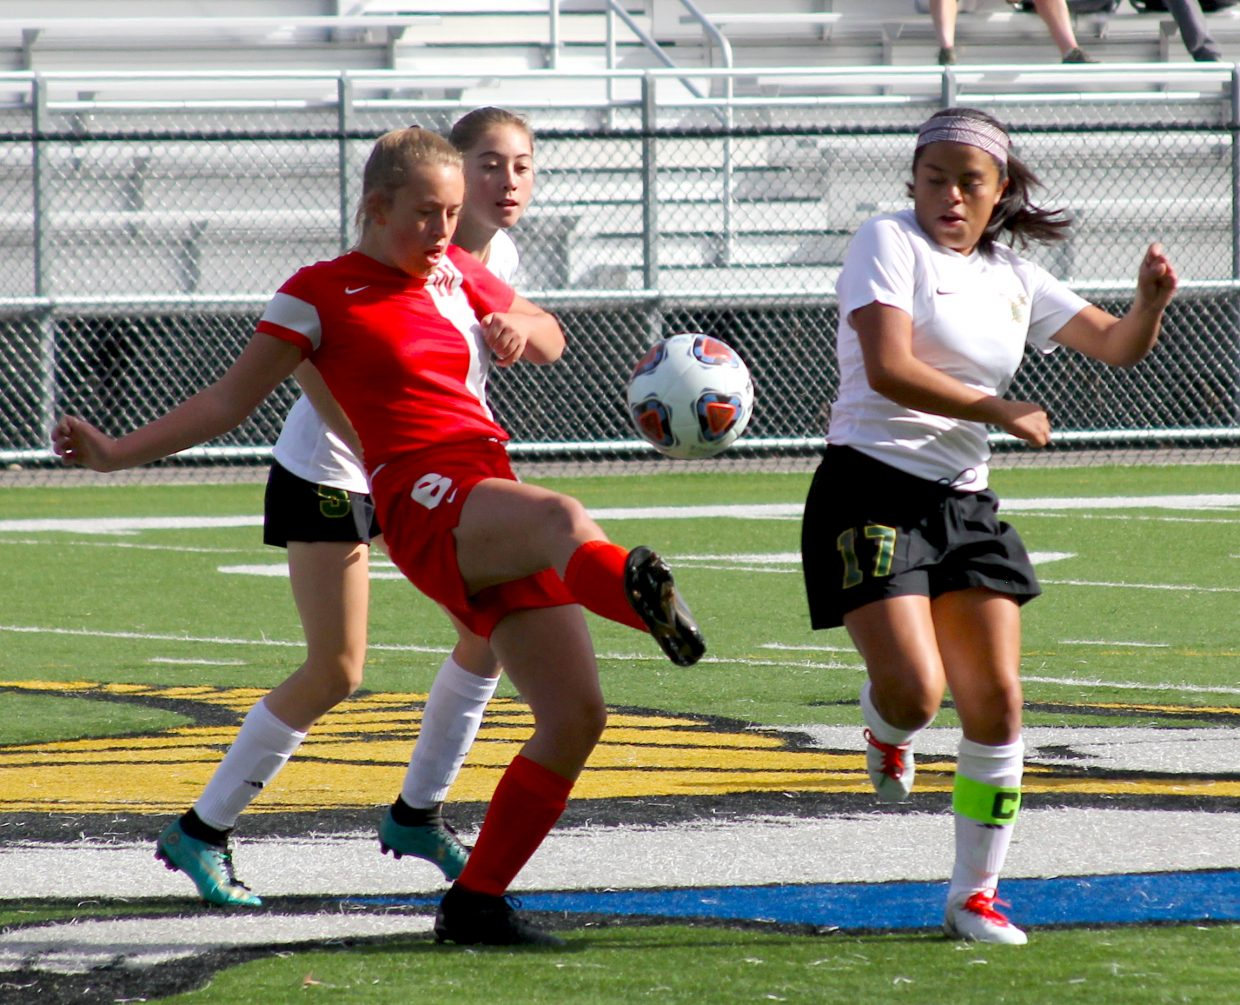 Whittell's Brianna Johns boots th eball upfield Thursday against Incline.